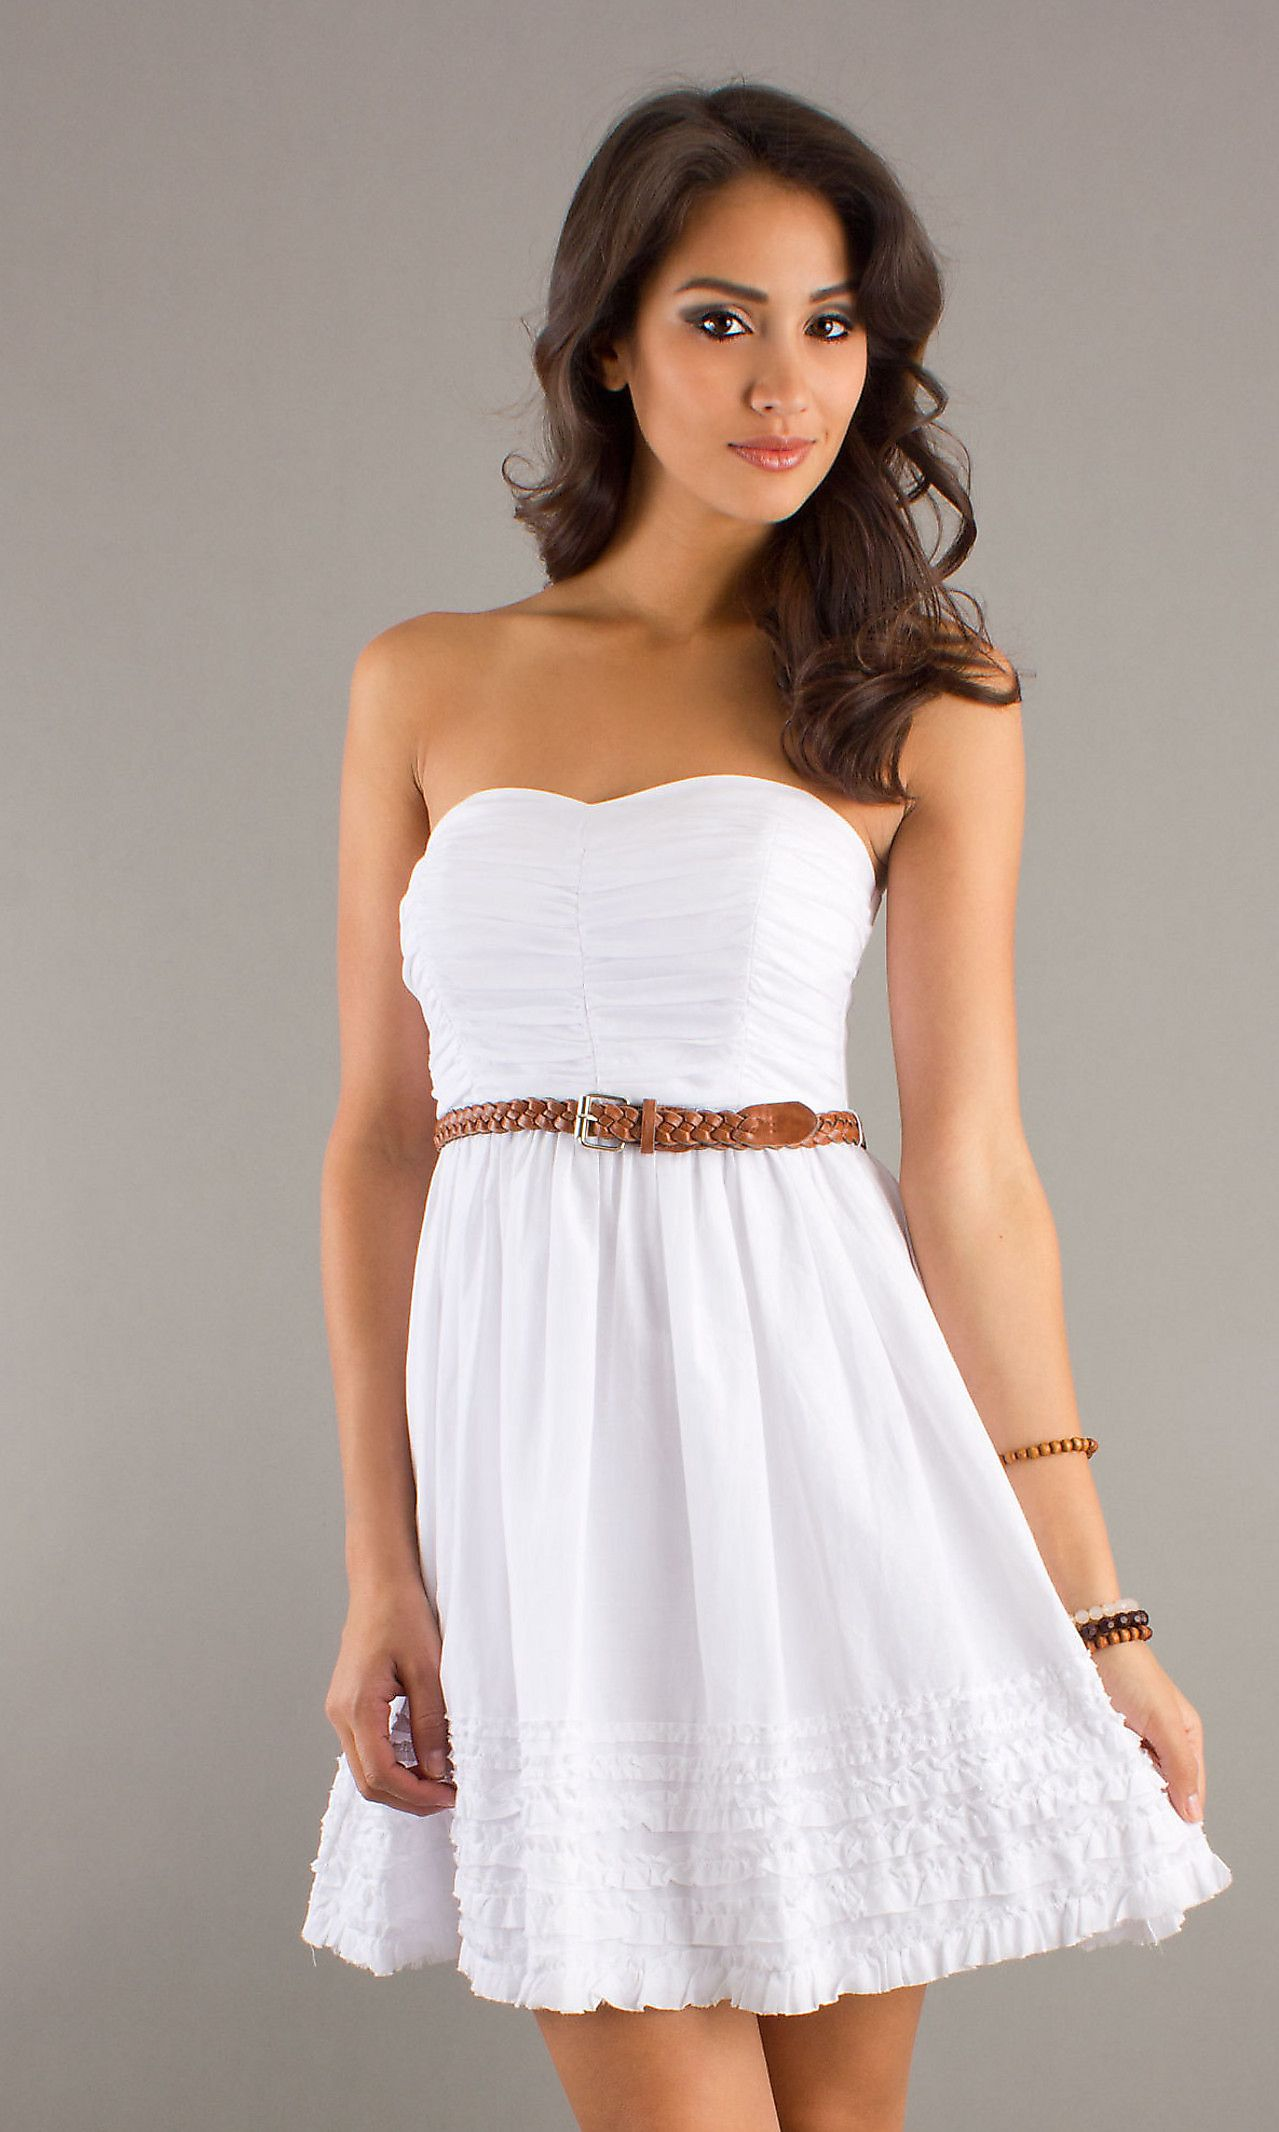 White Short Strapless Dress